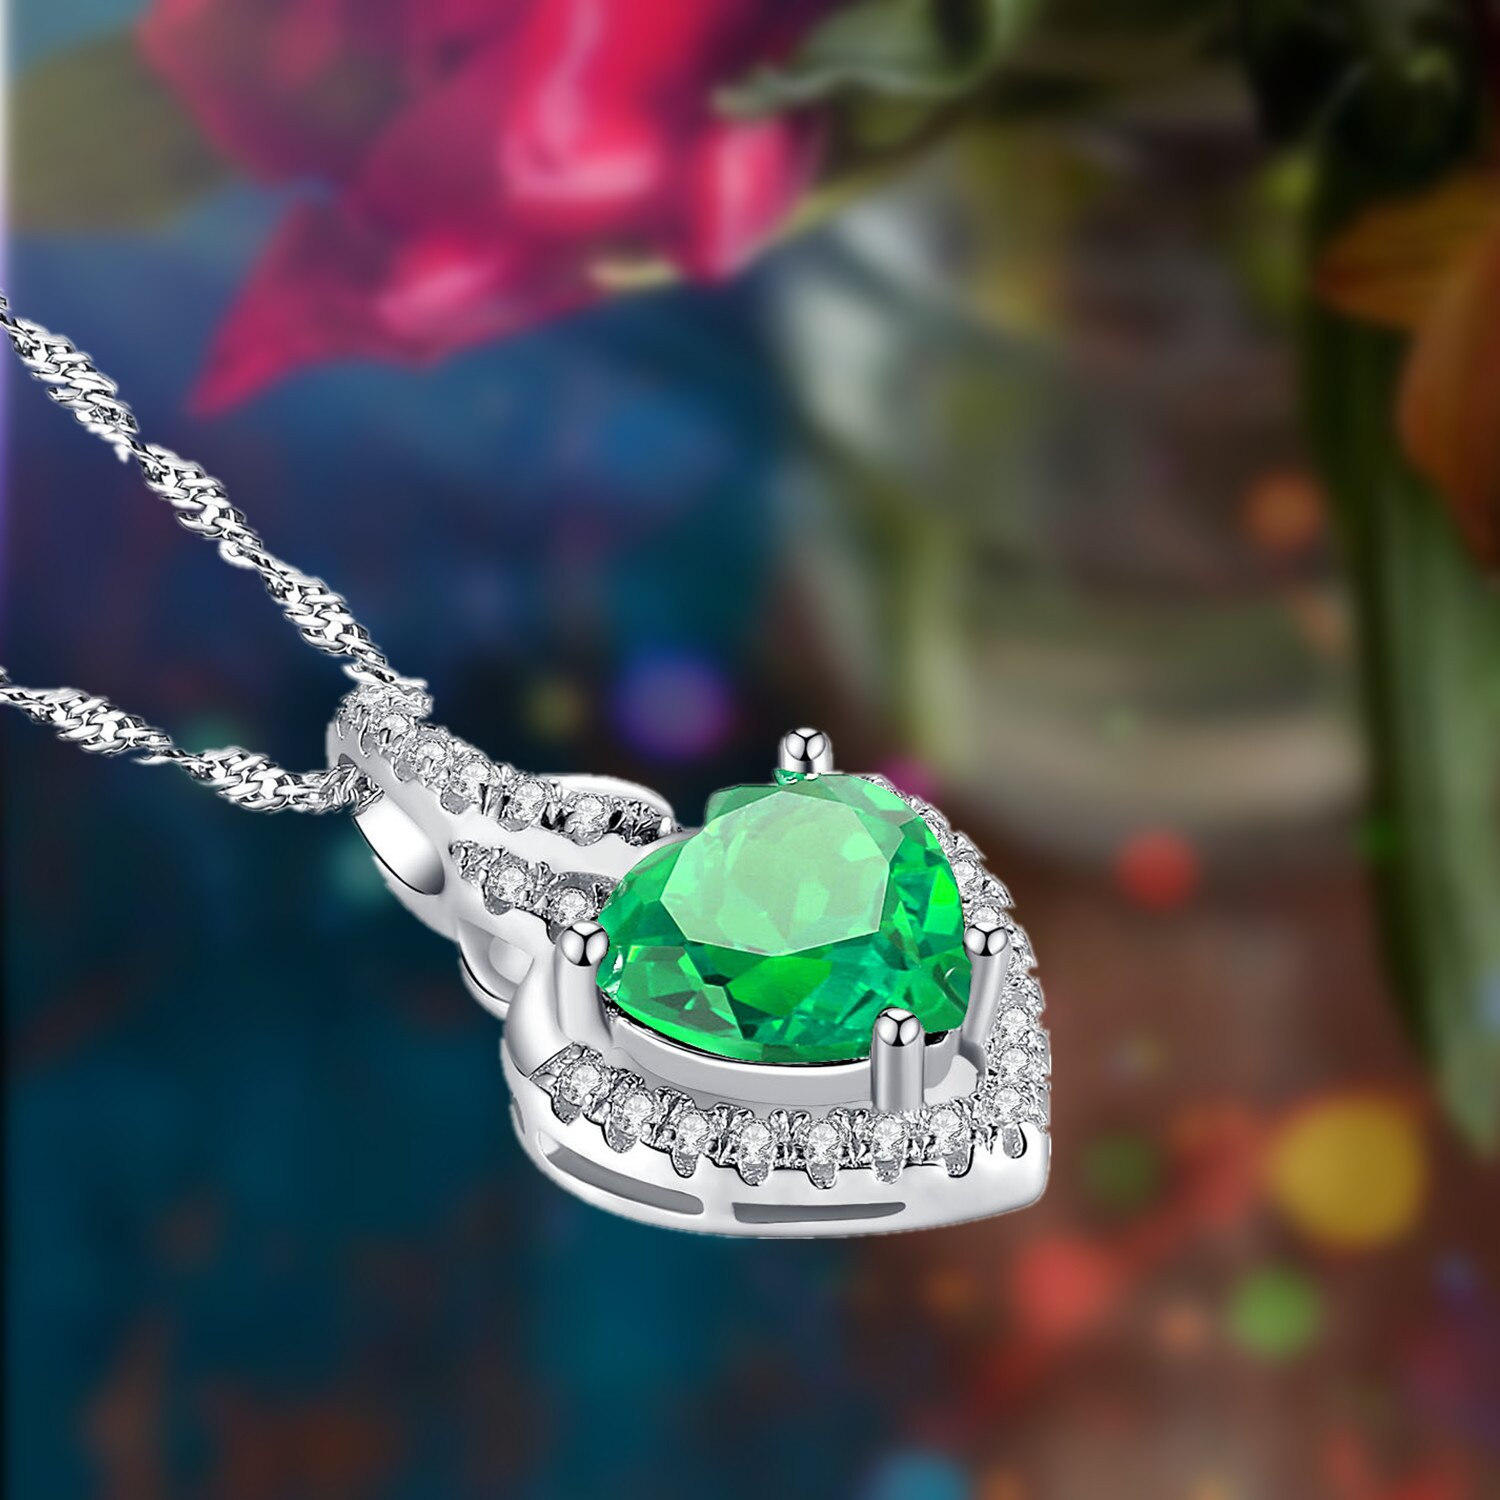 Mabellajewelry rakuten mabella sterling silver simulated emerald mabella sterling silver simulated emerald heart pendant necklace gifts for women18 3 aloadofball Images